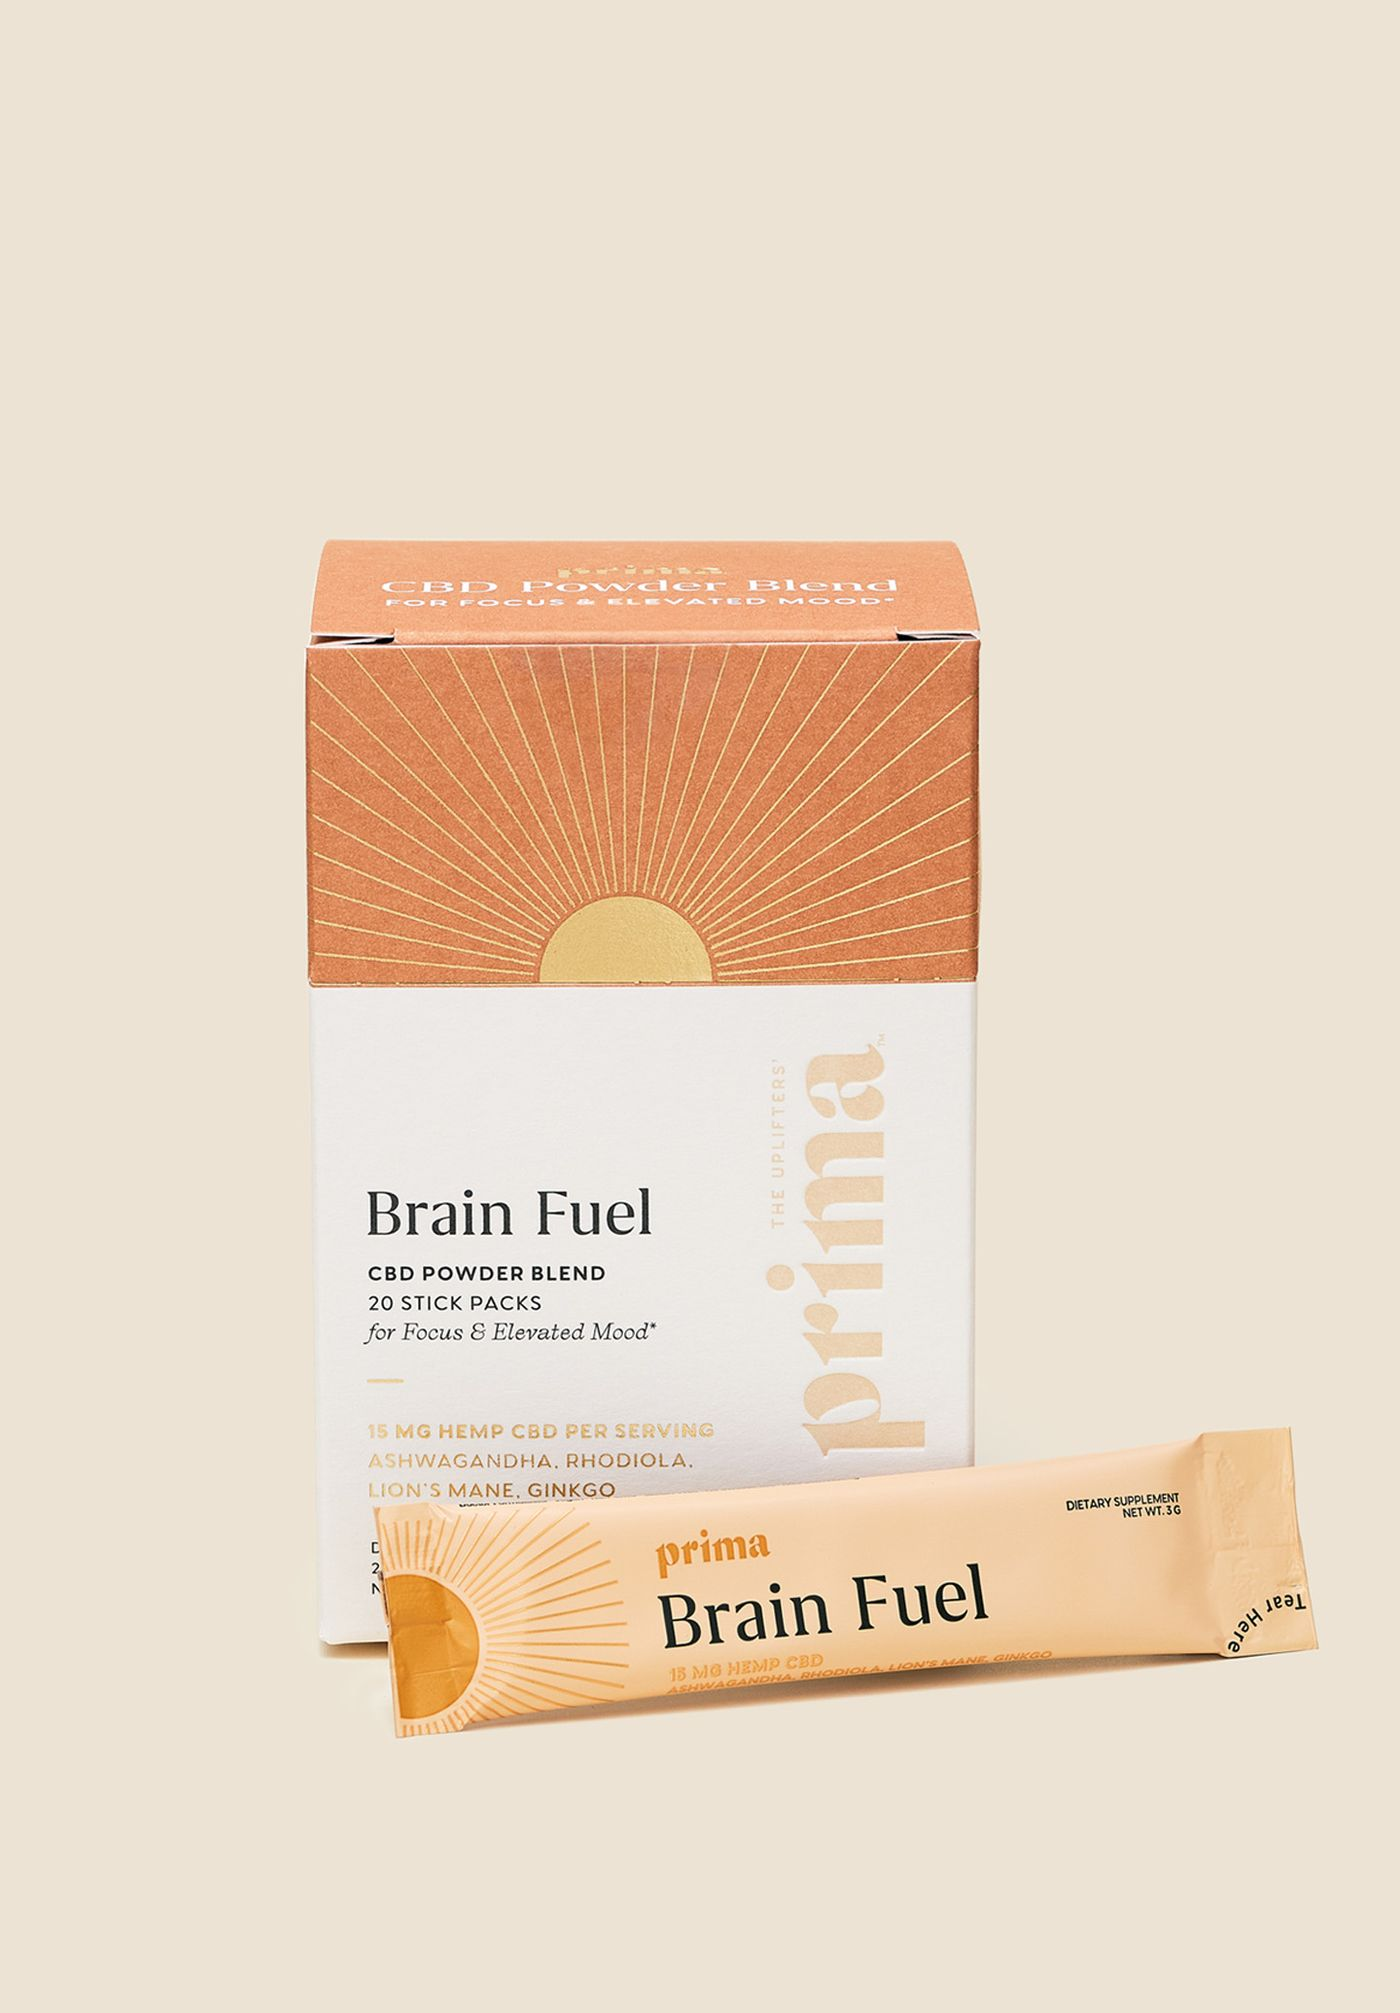 Brain Fuel 15mg CBD Functional Powder